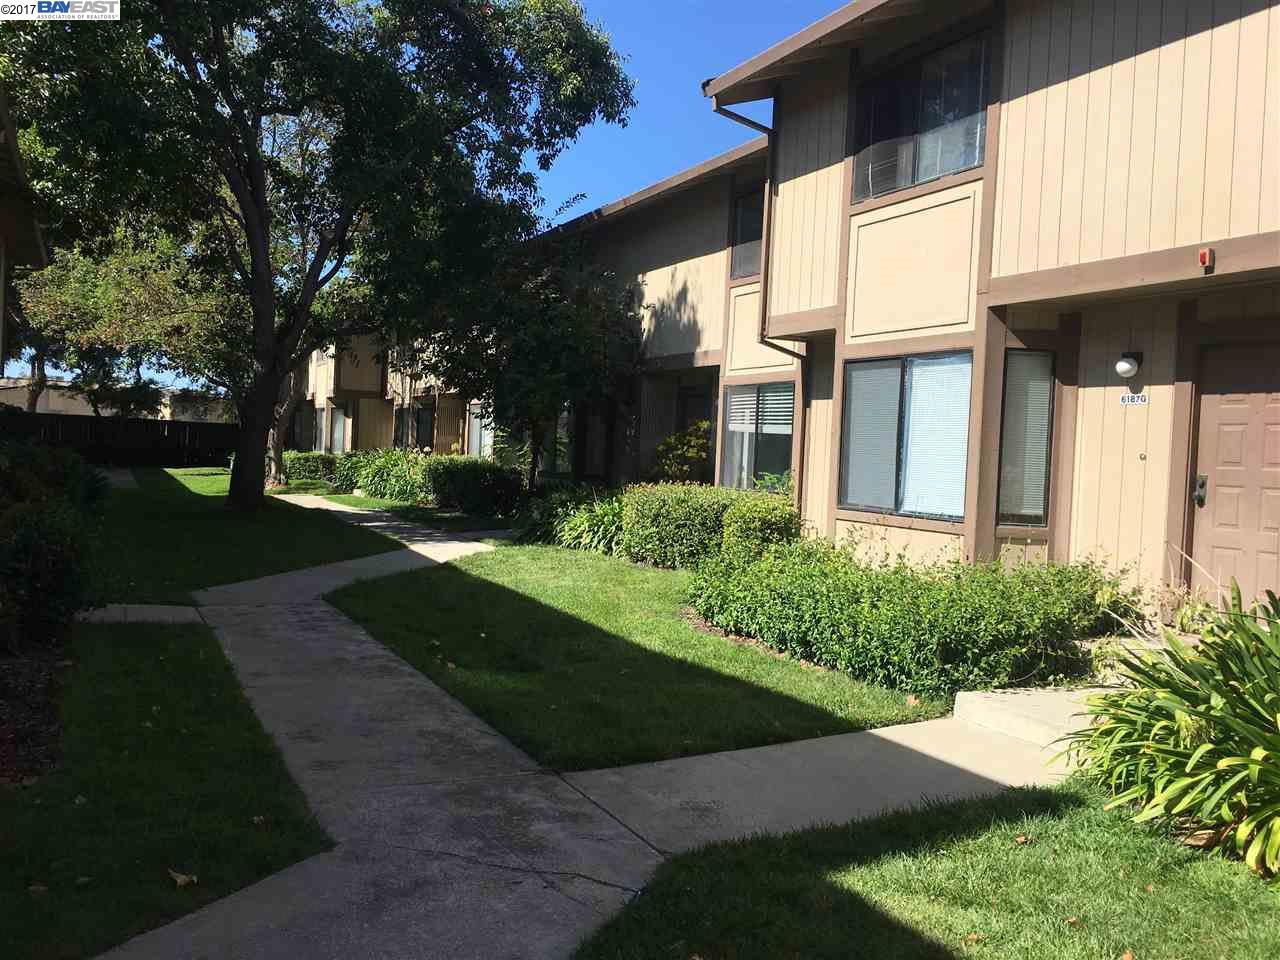 Townhouse for Rent at 6187 Joaquin Murieta Avenue 6187 Joaquin Murieta Avenue Newark, California 94560 United States